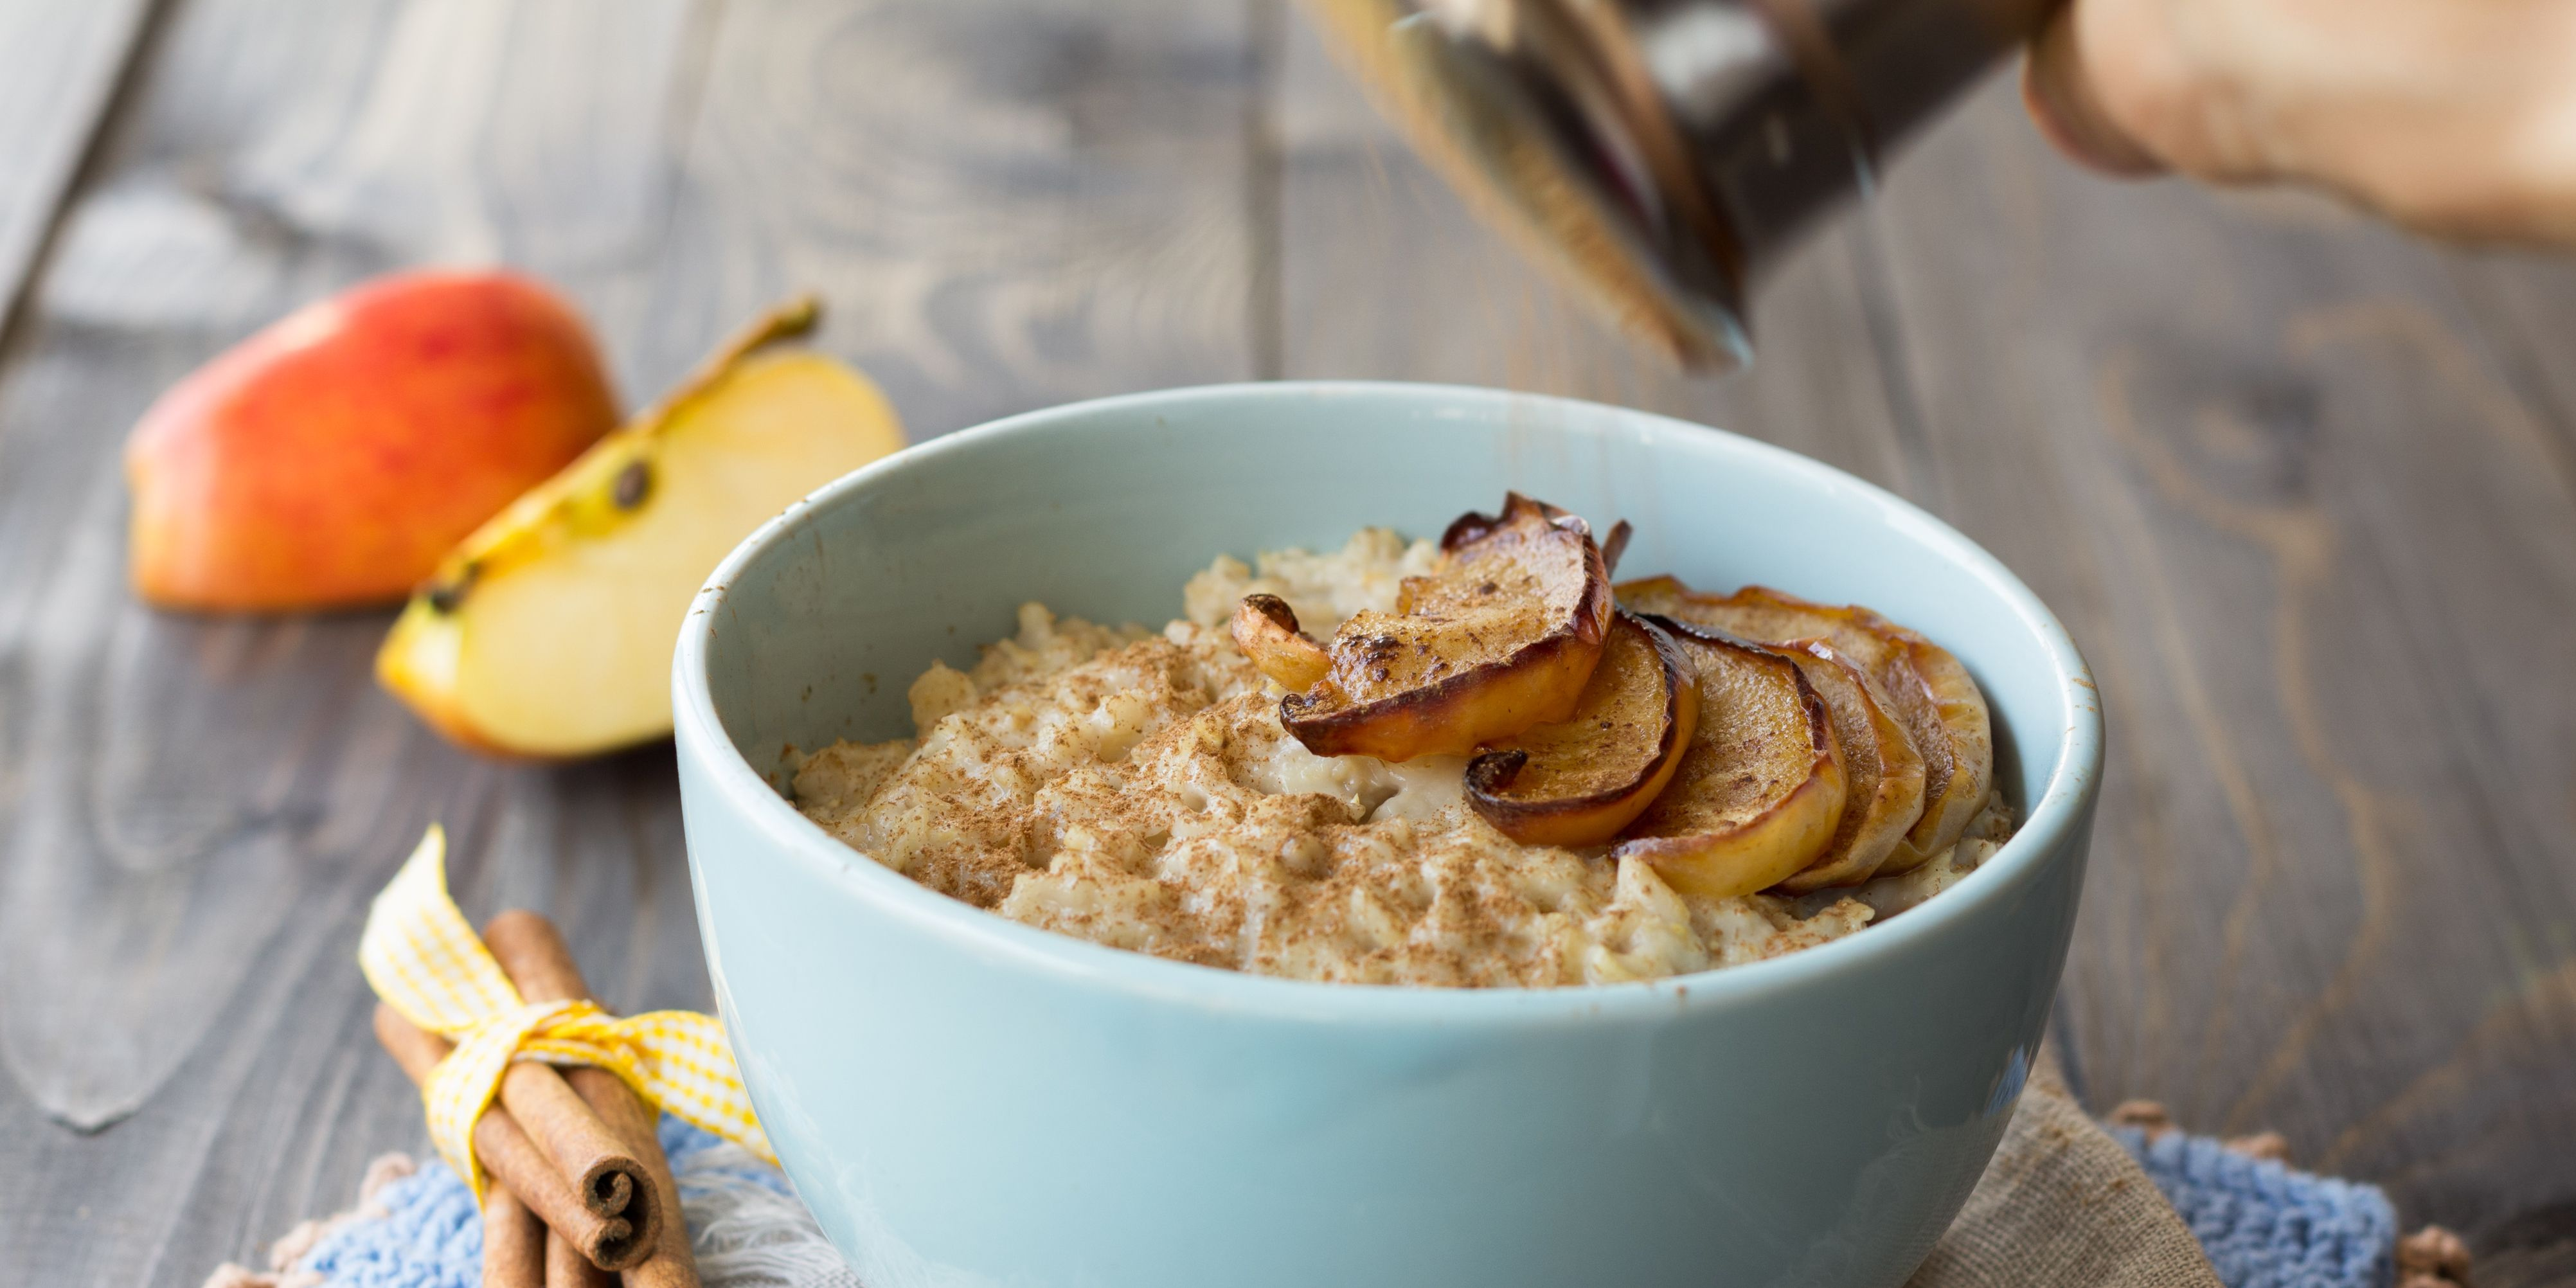 Oatmeal with baked apples and cinnamon